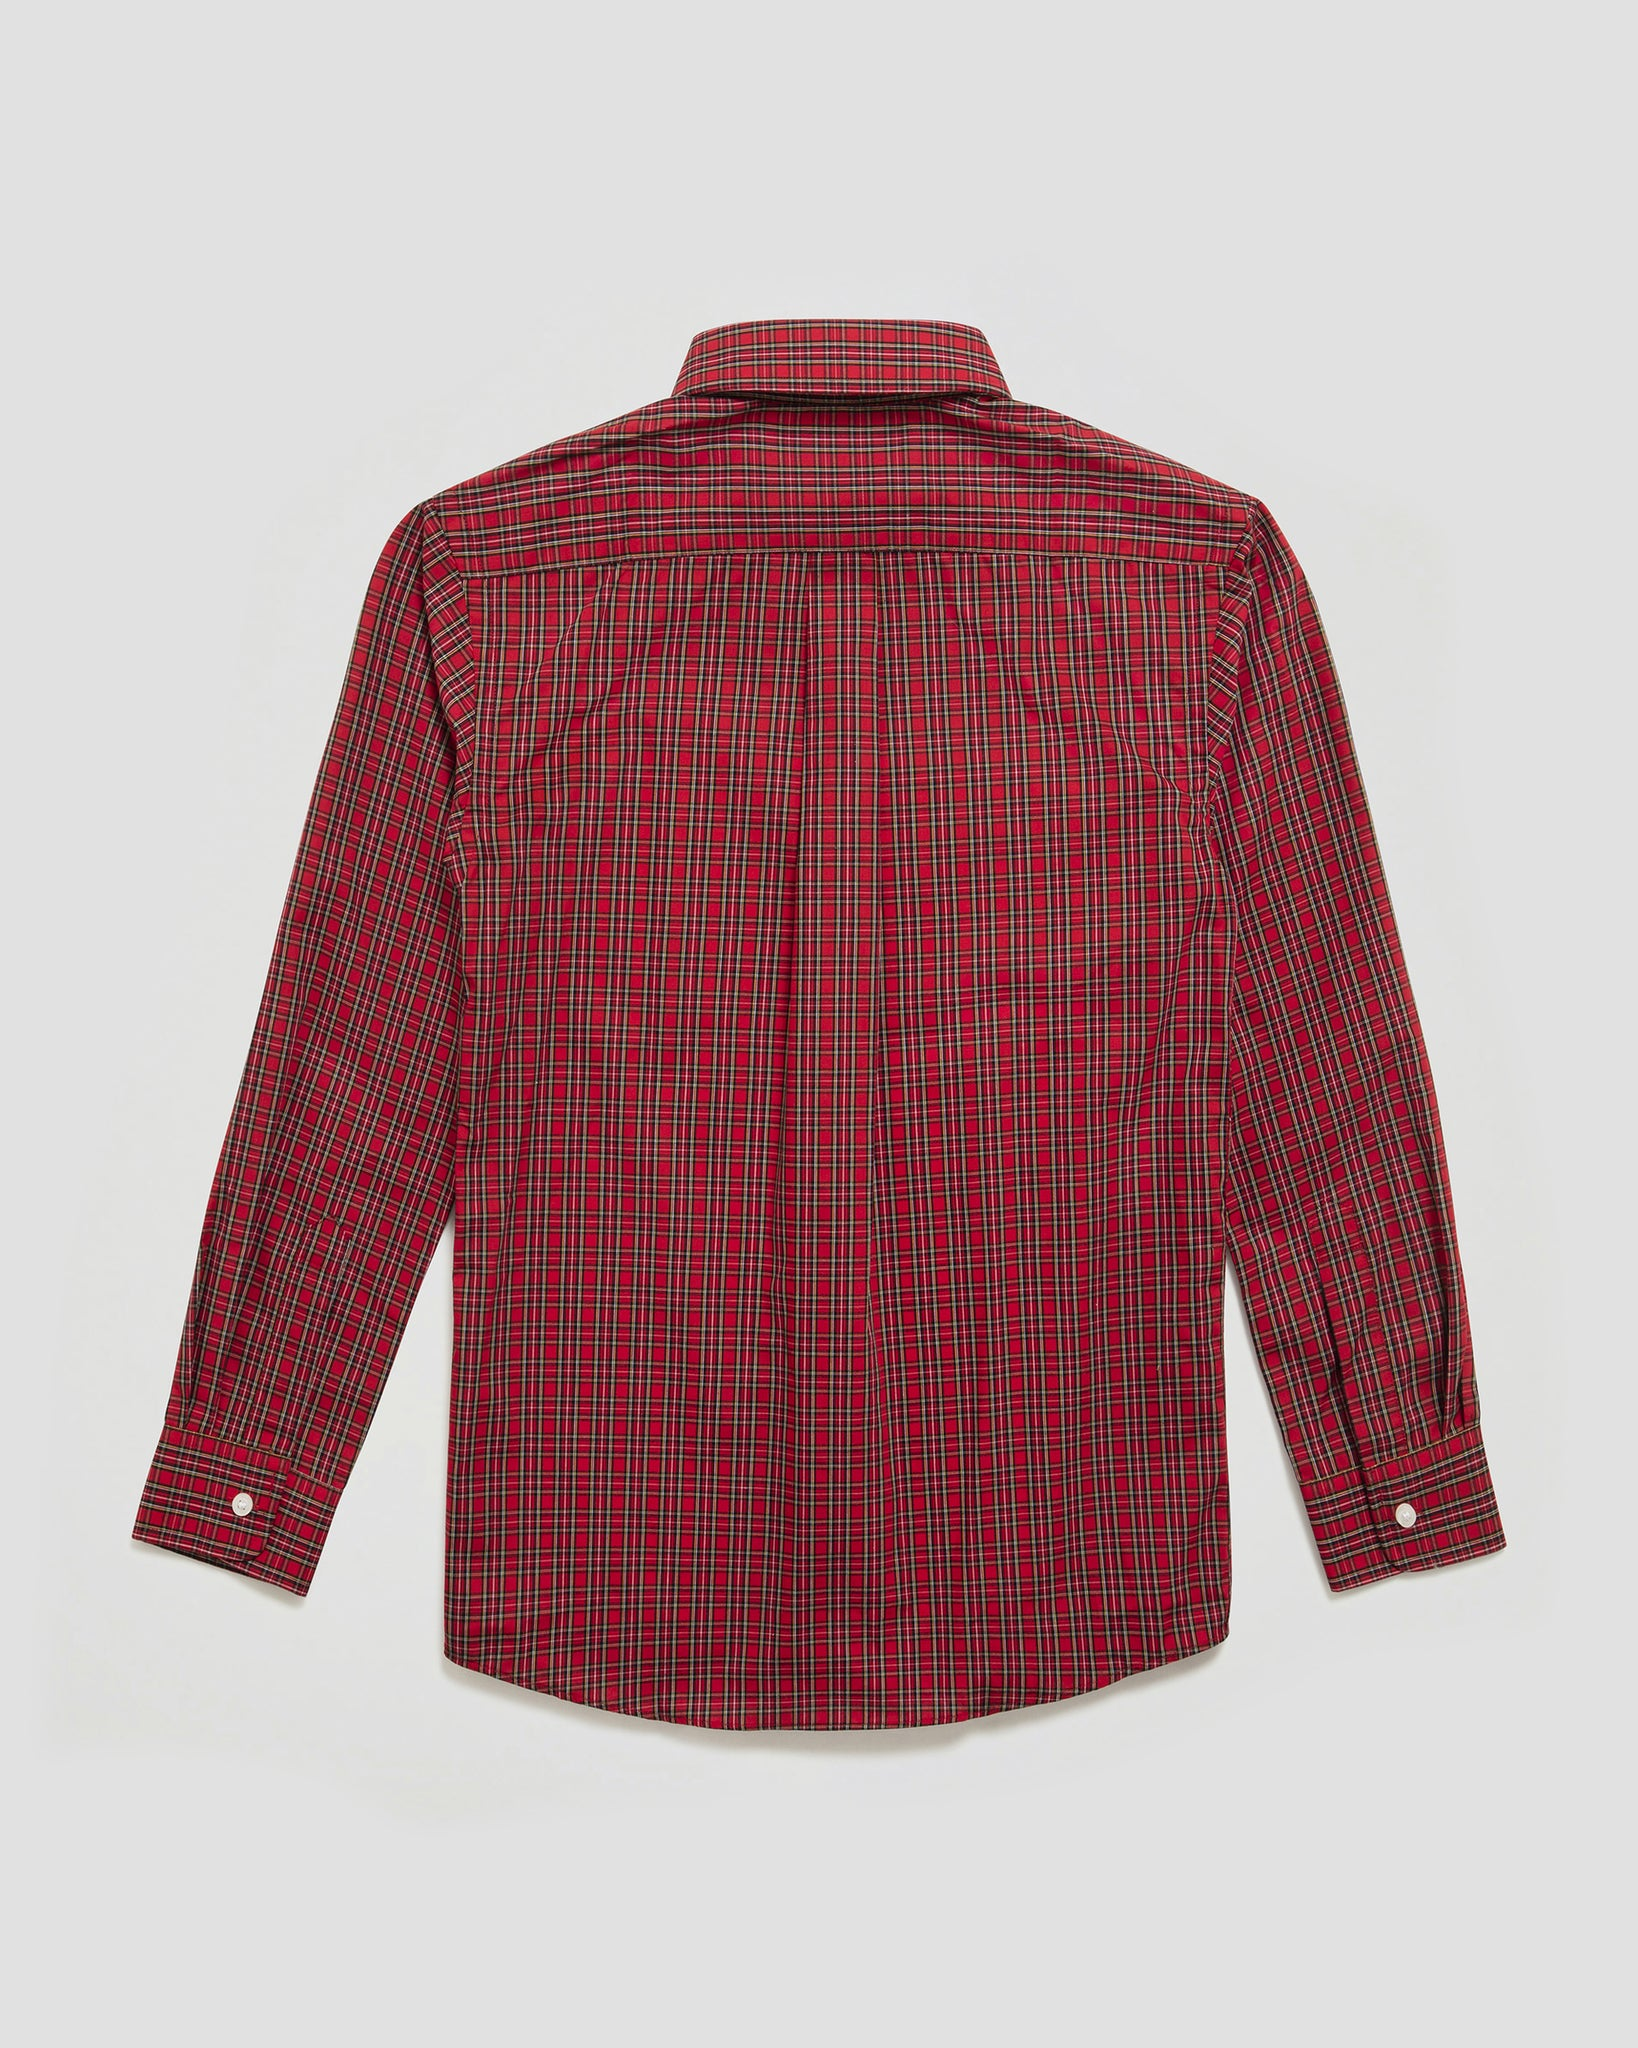 MagnaClick Casual Plaid Shirt - Kids